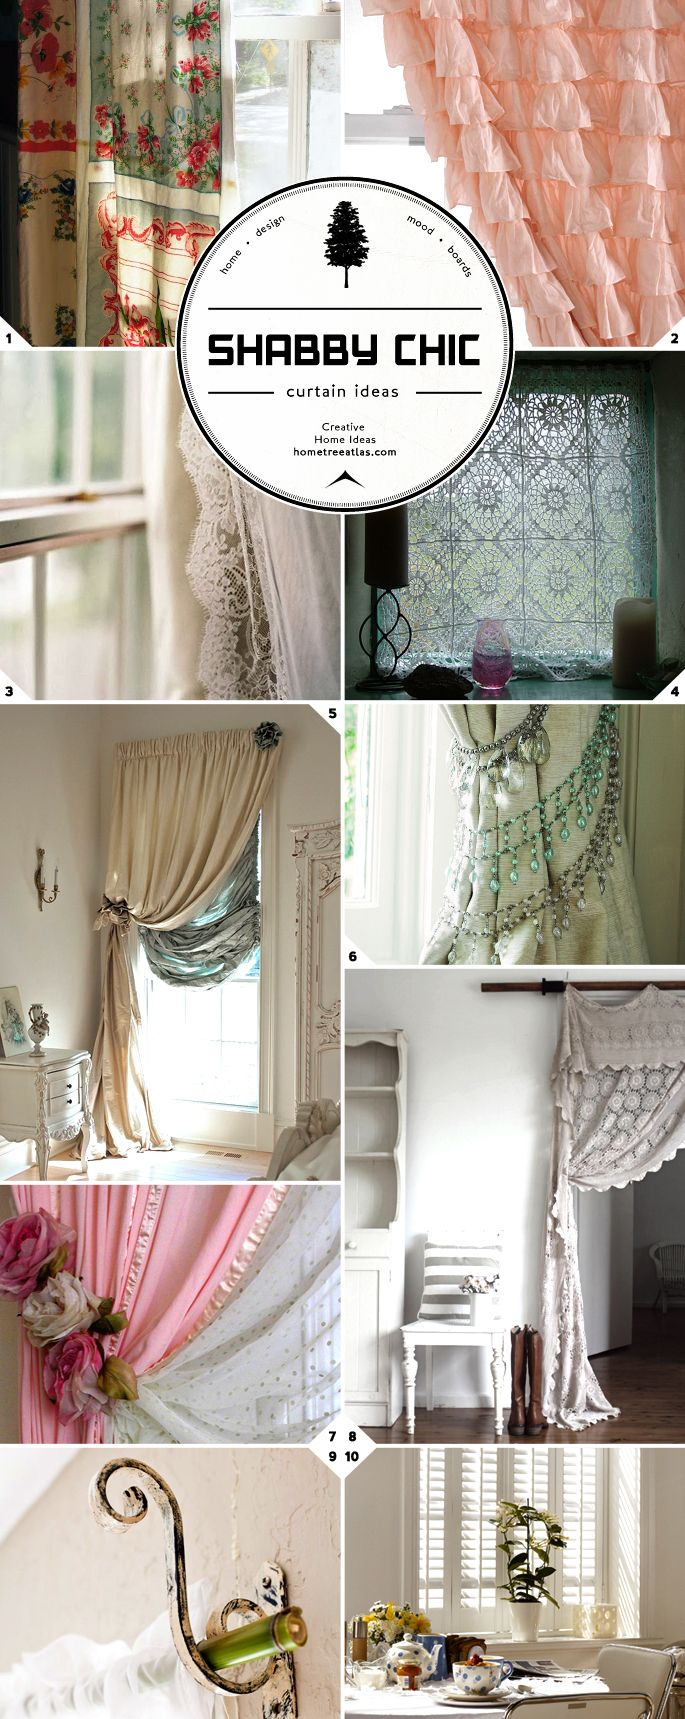 best ideas for the home images on pinterest home ideas house